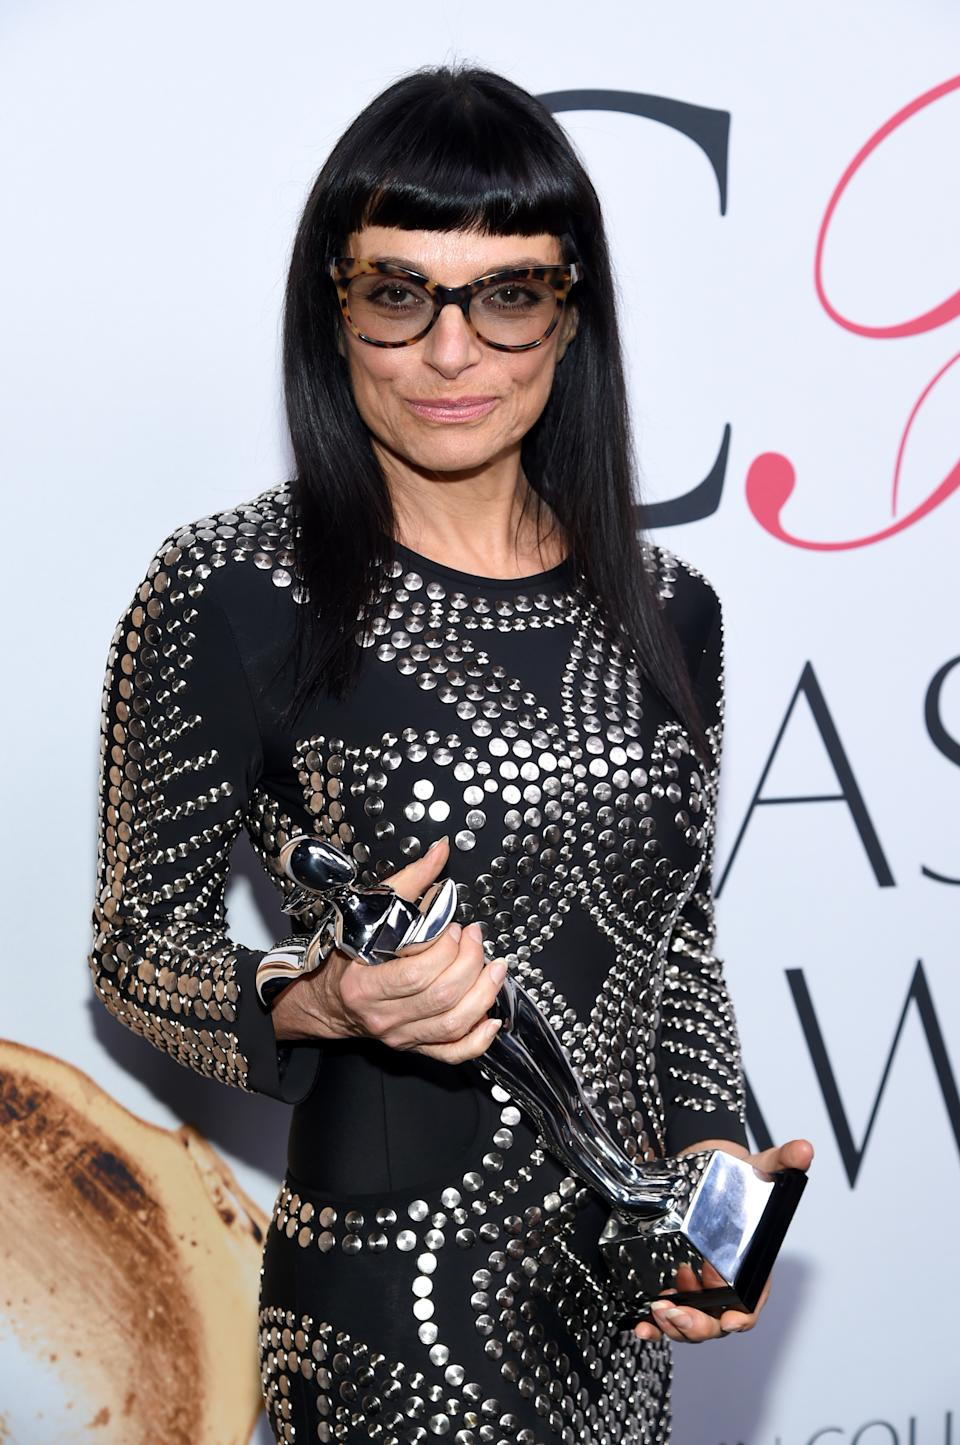 Norma Kamali with her Lifetime Achievement Award at the CFDA Fashion Awards in 2016. (Photo: Evan Agostini/Invision/AP)